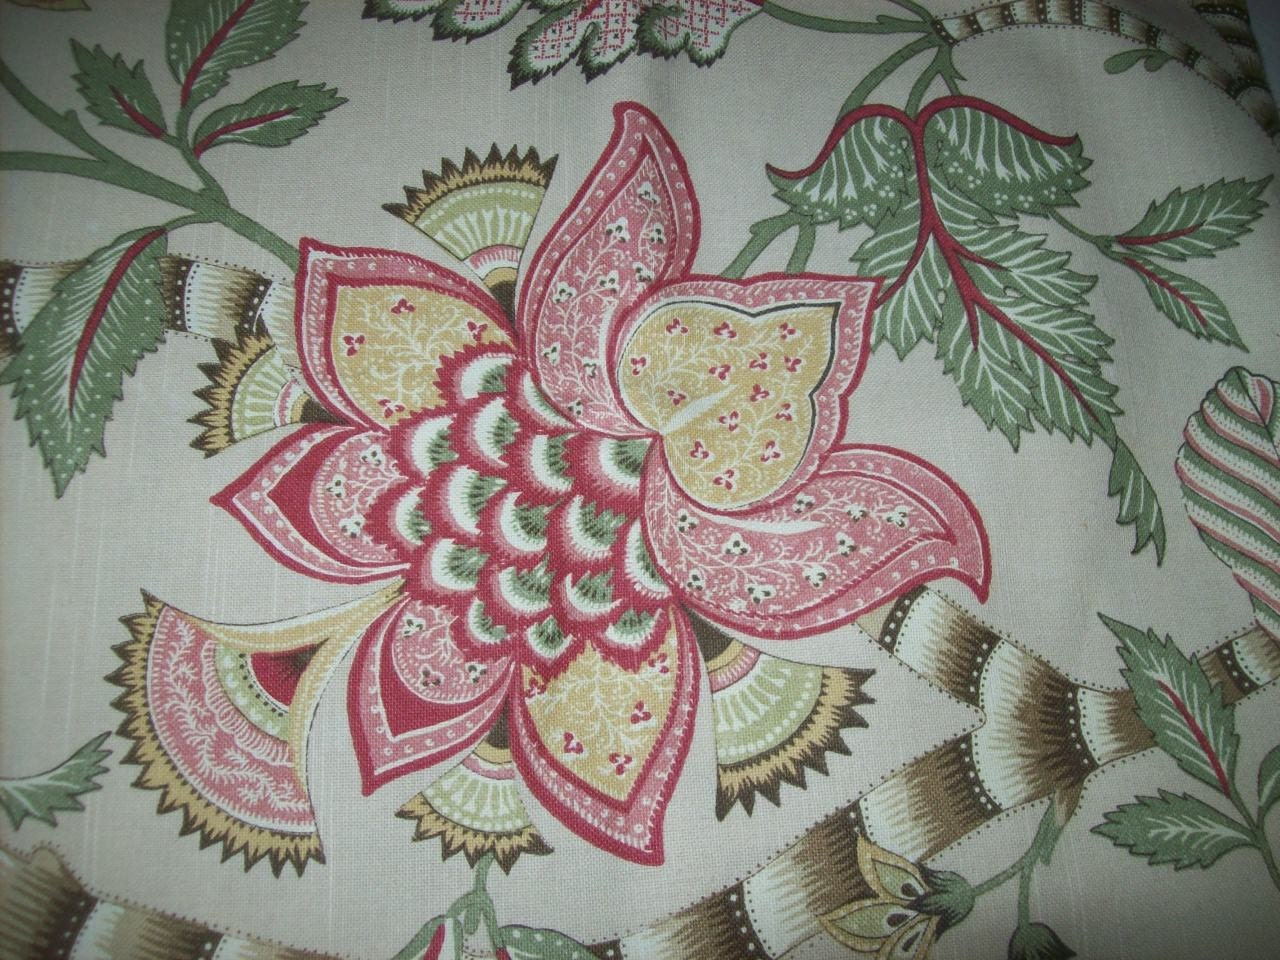 Floral Upholstery Fabric by the Yard for Home Decor